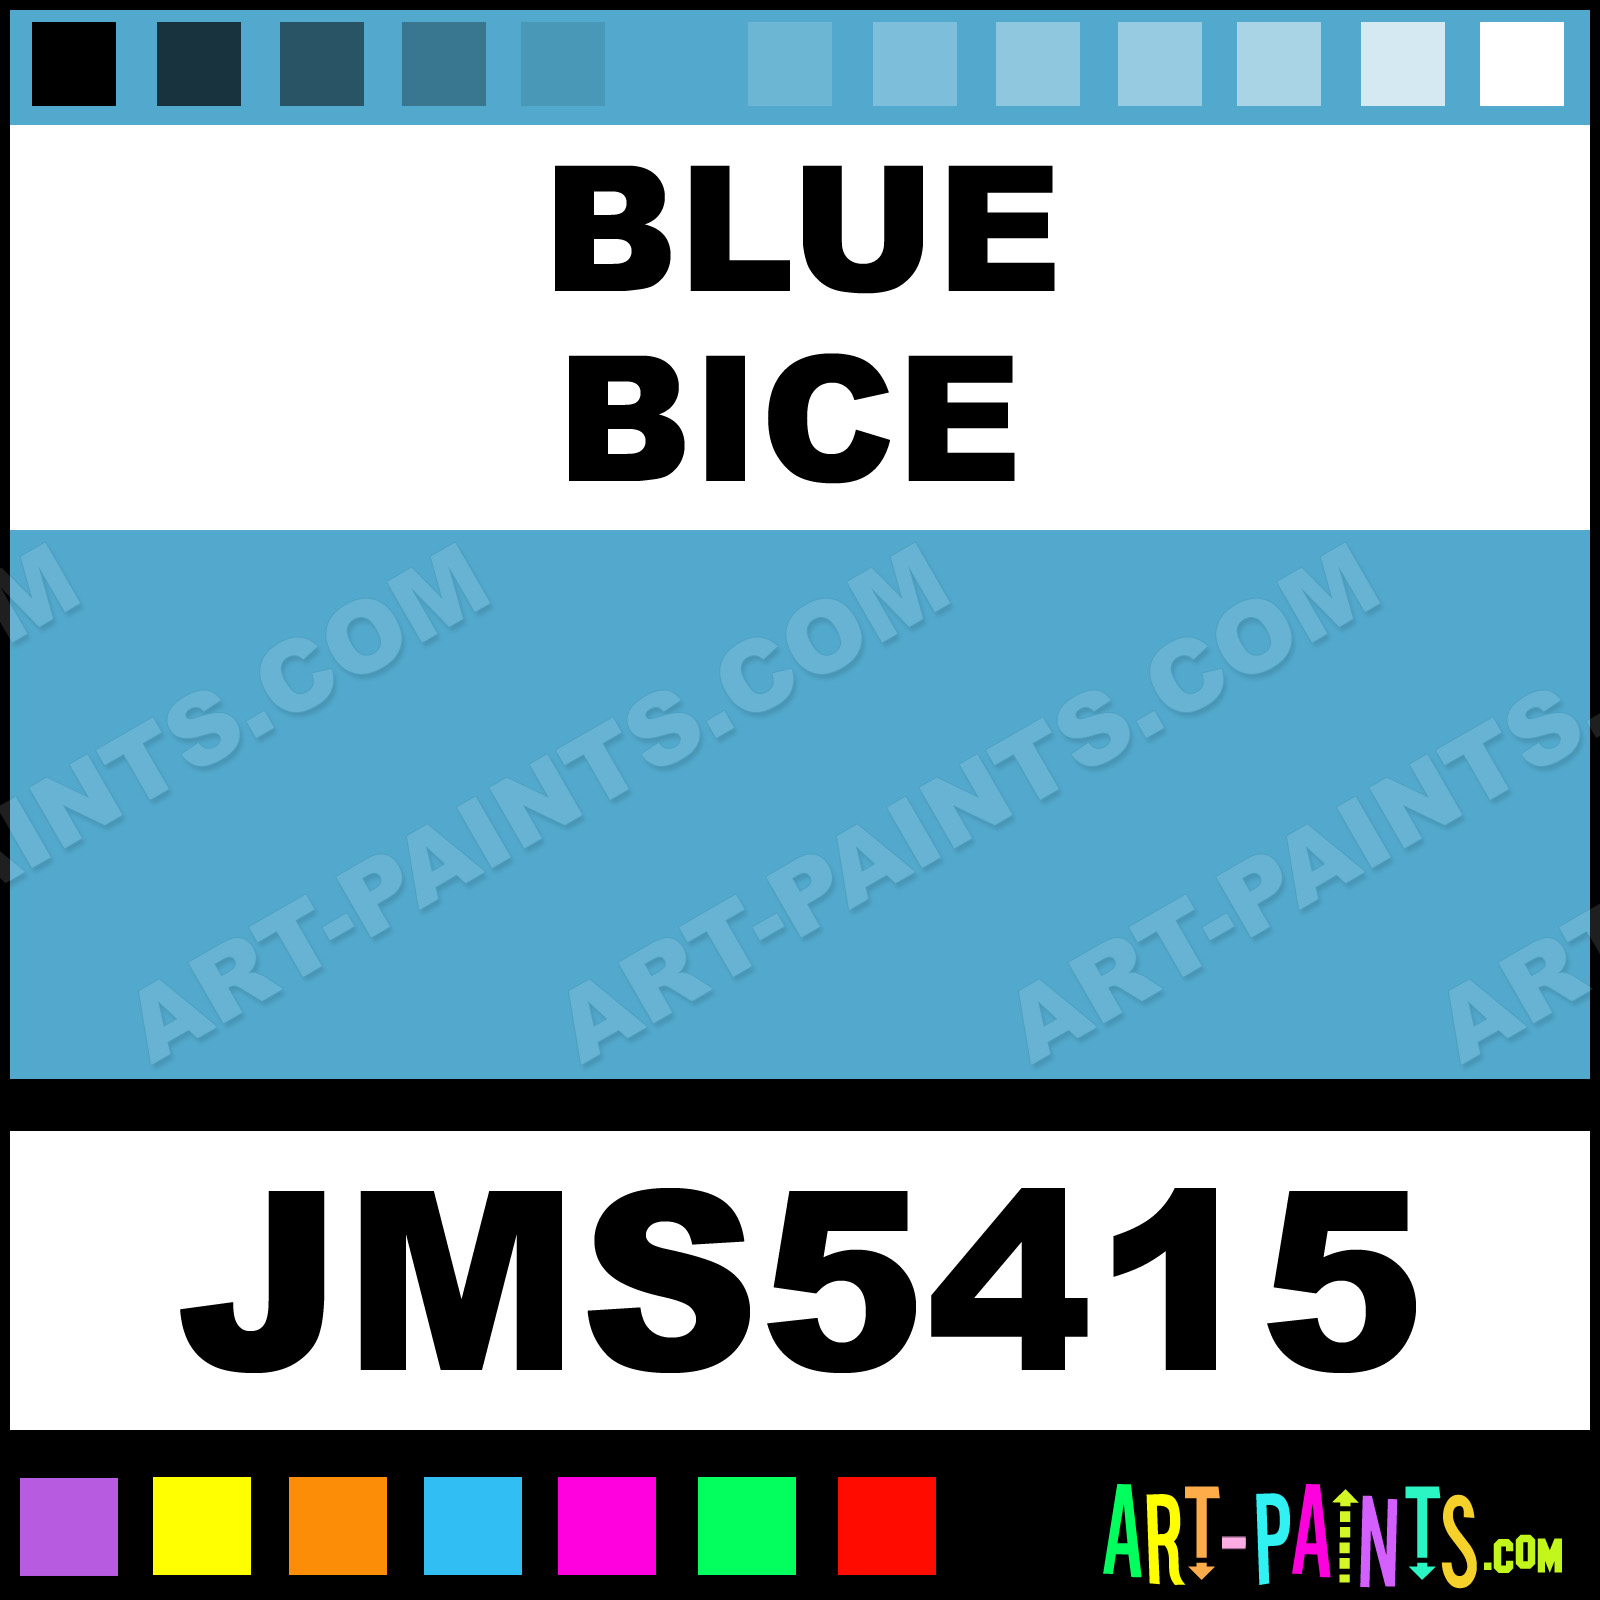 Joe Miller Paints Blue Bice Signature Watercolor